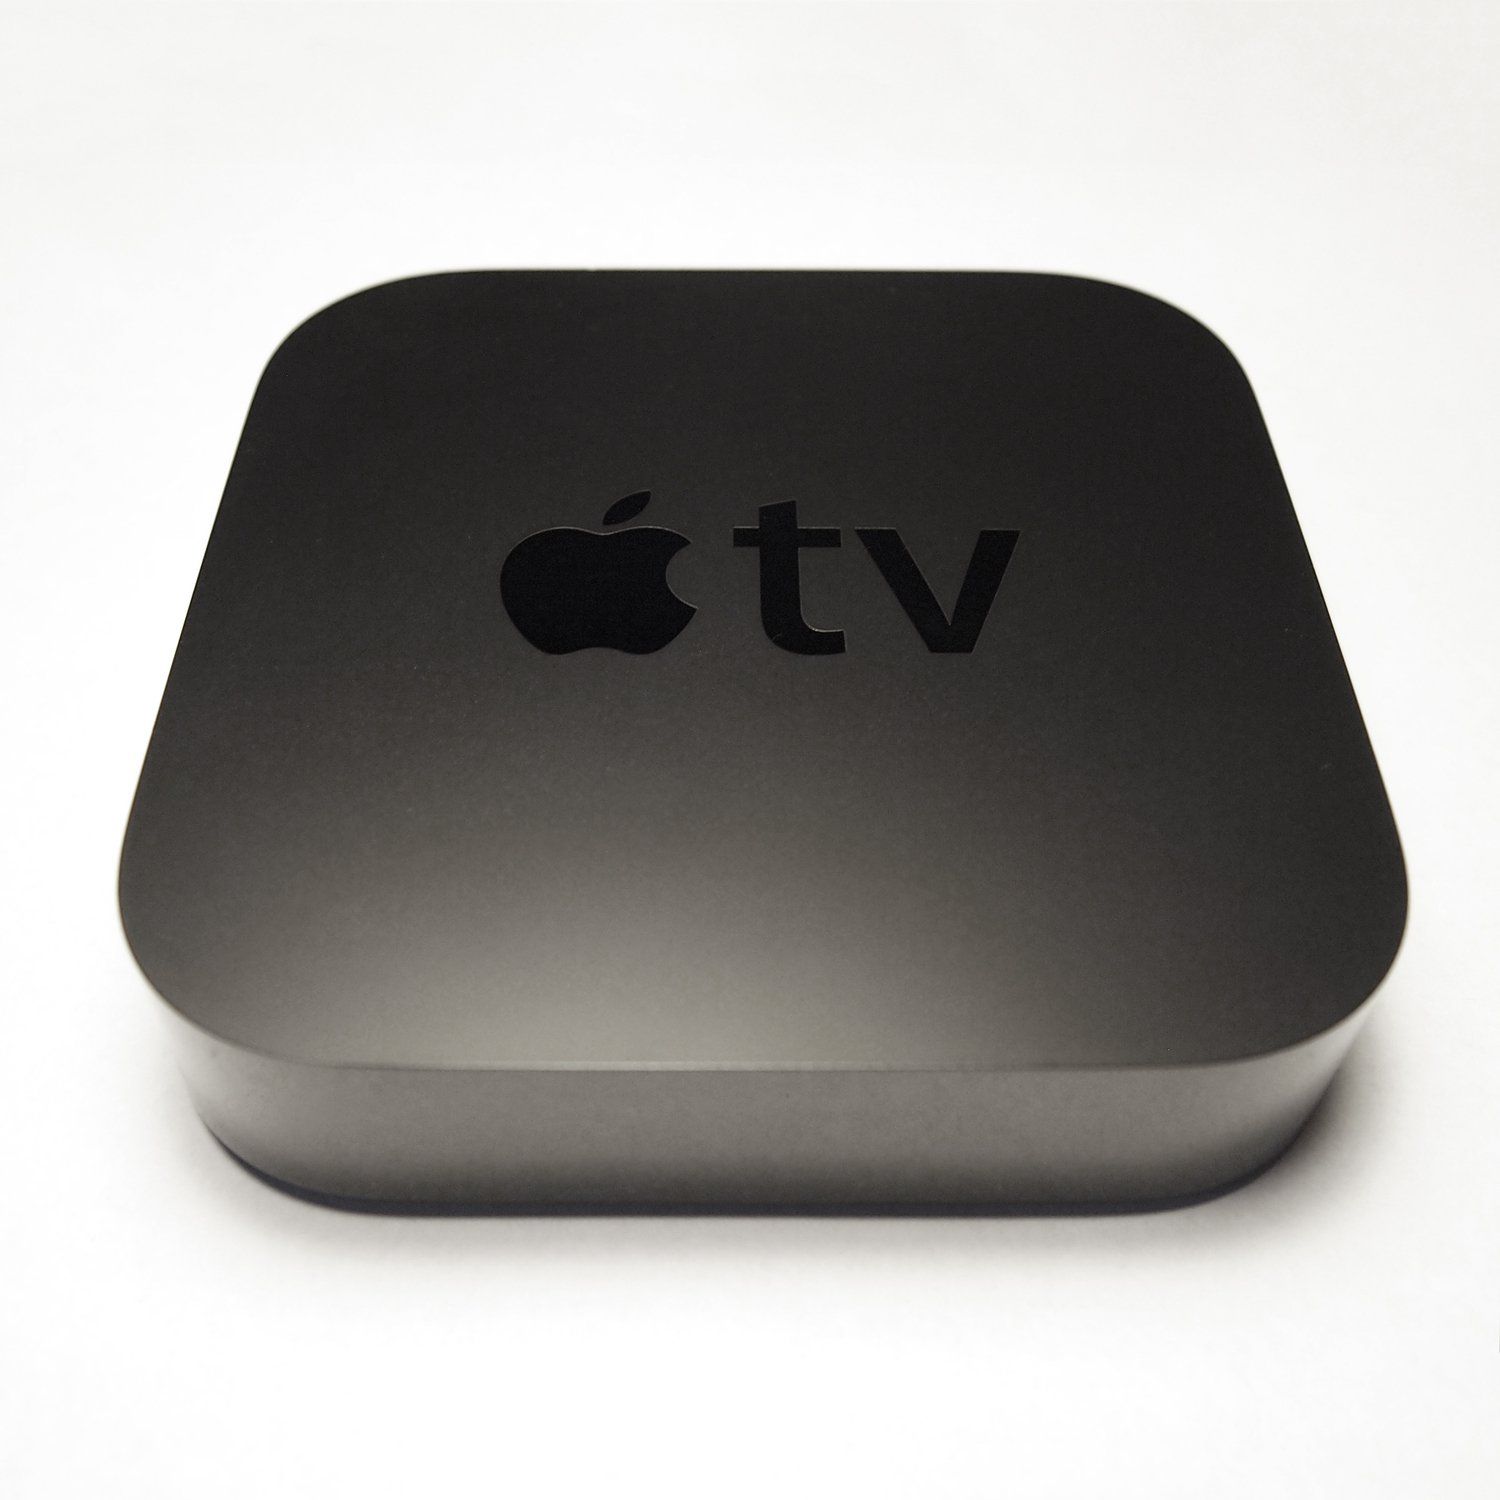 New Apple TV With A8 CPU Will Support 4K Video